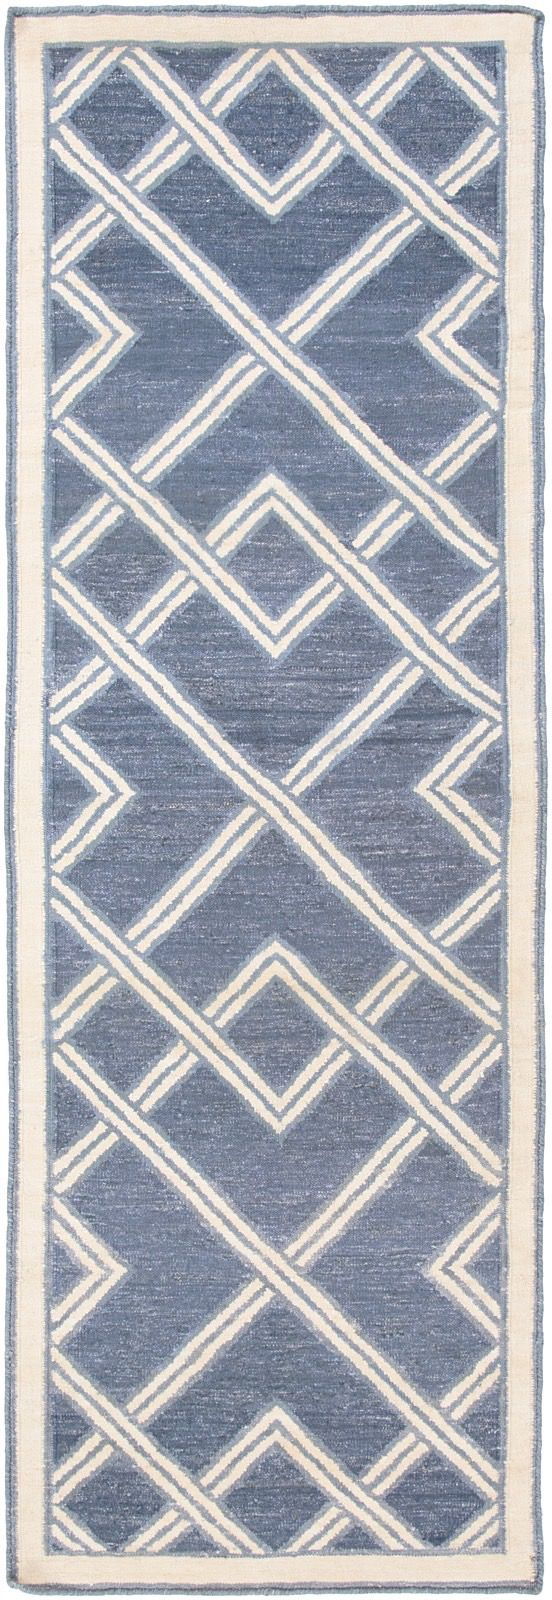 surya brighton contemporary area rug collection